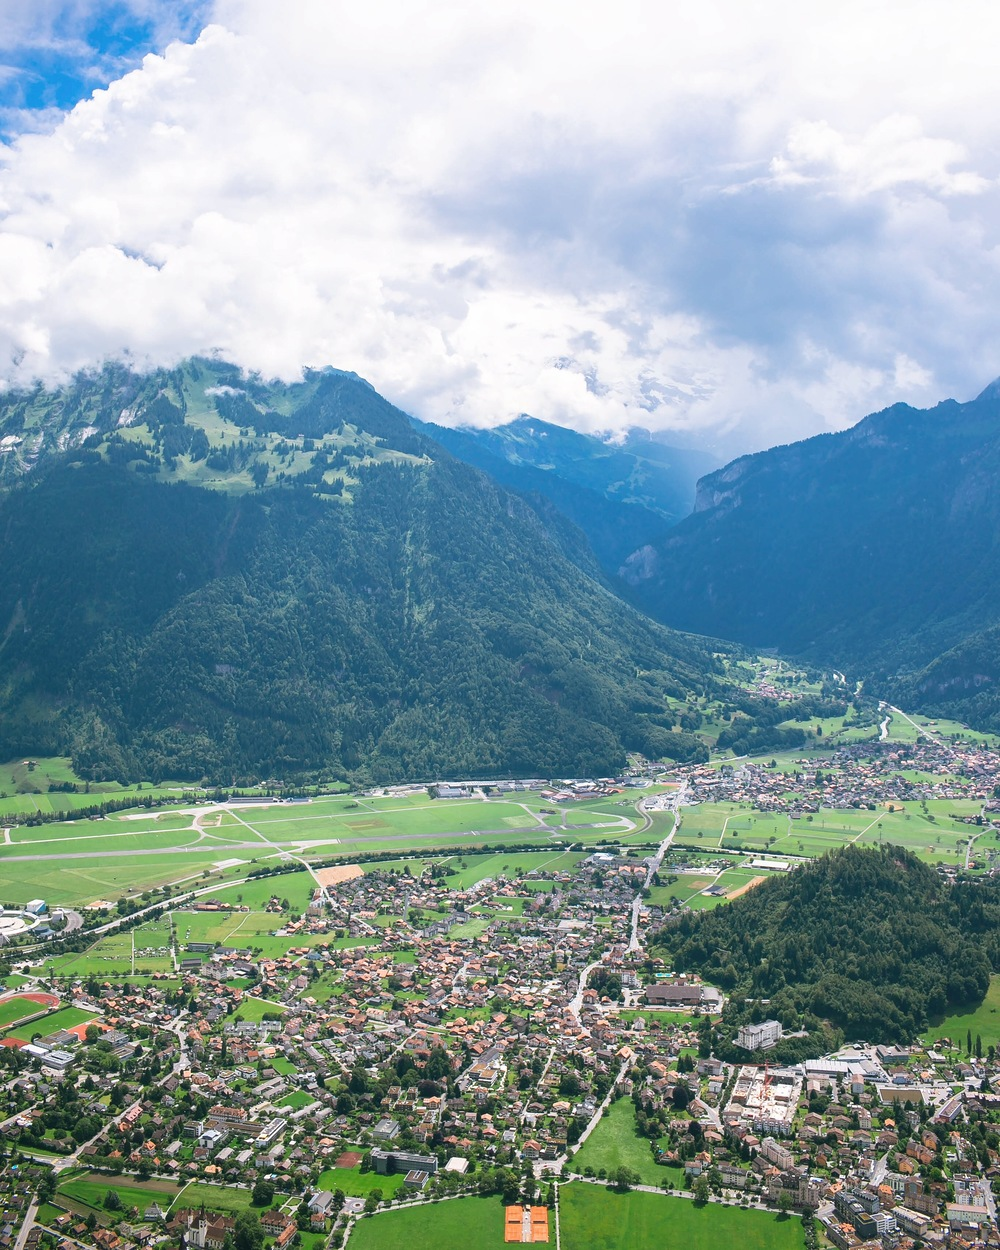 Interlaken, Switzerland from above